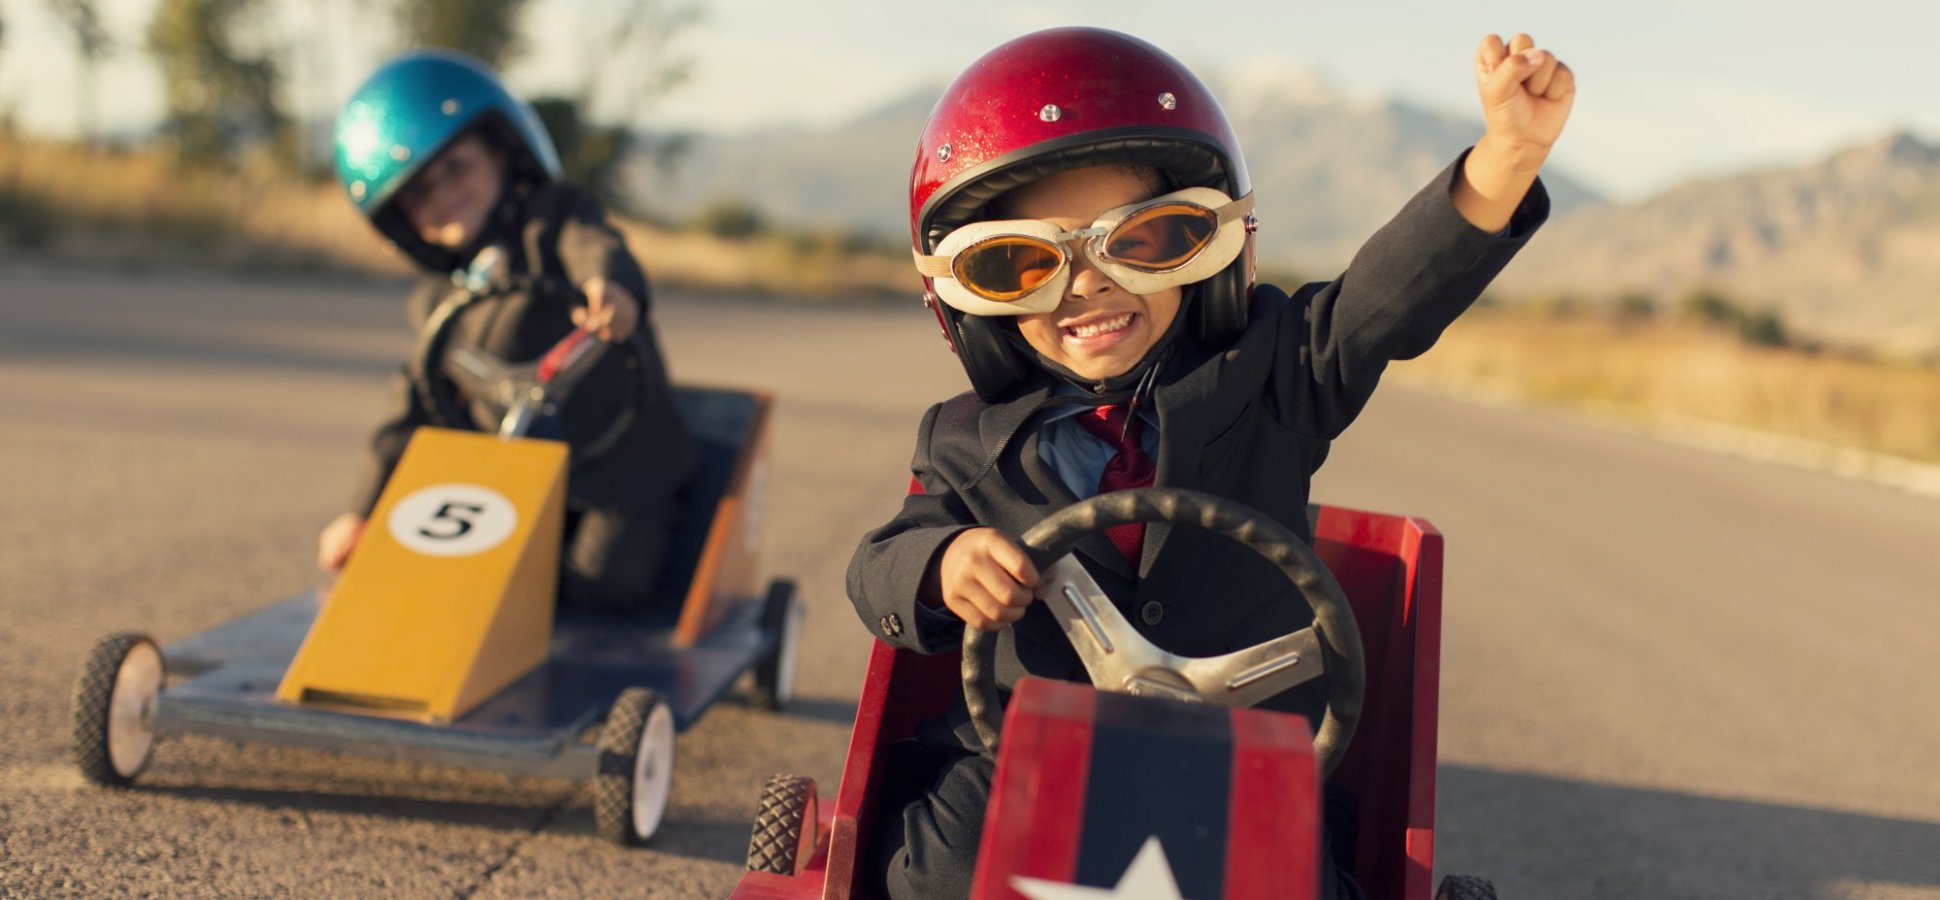 4 Things You Need To Do To Win In The New Era Of Innovation